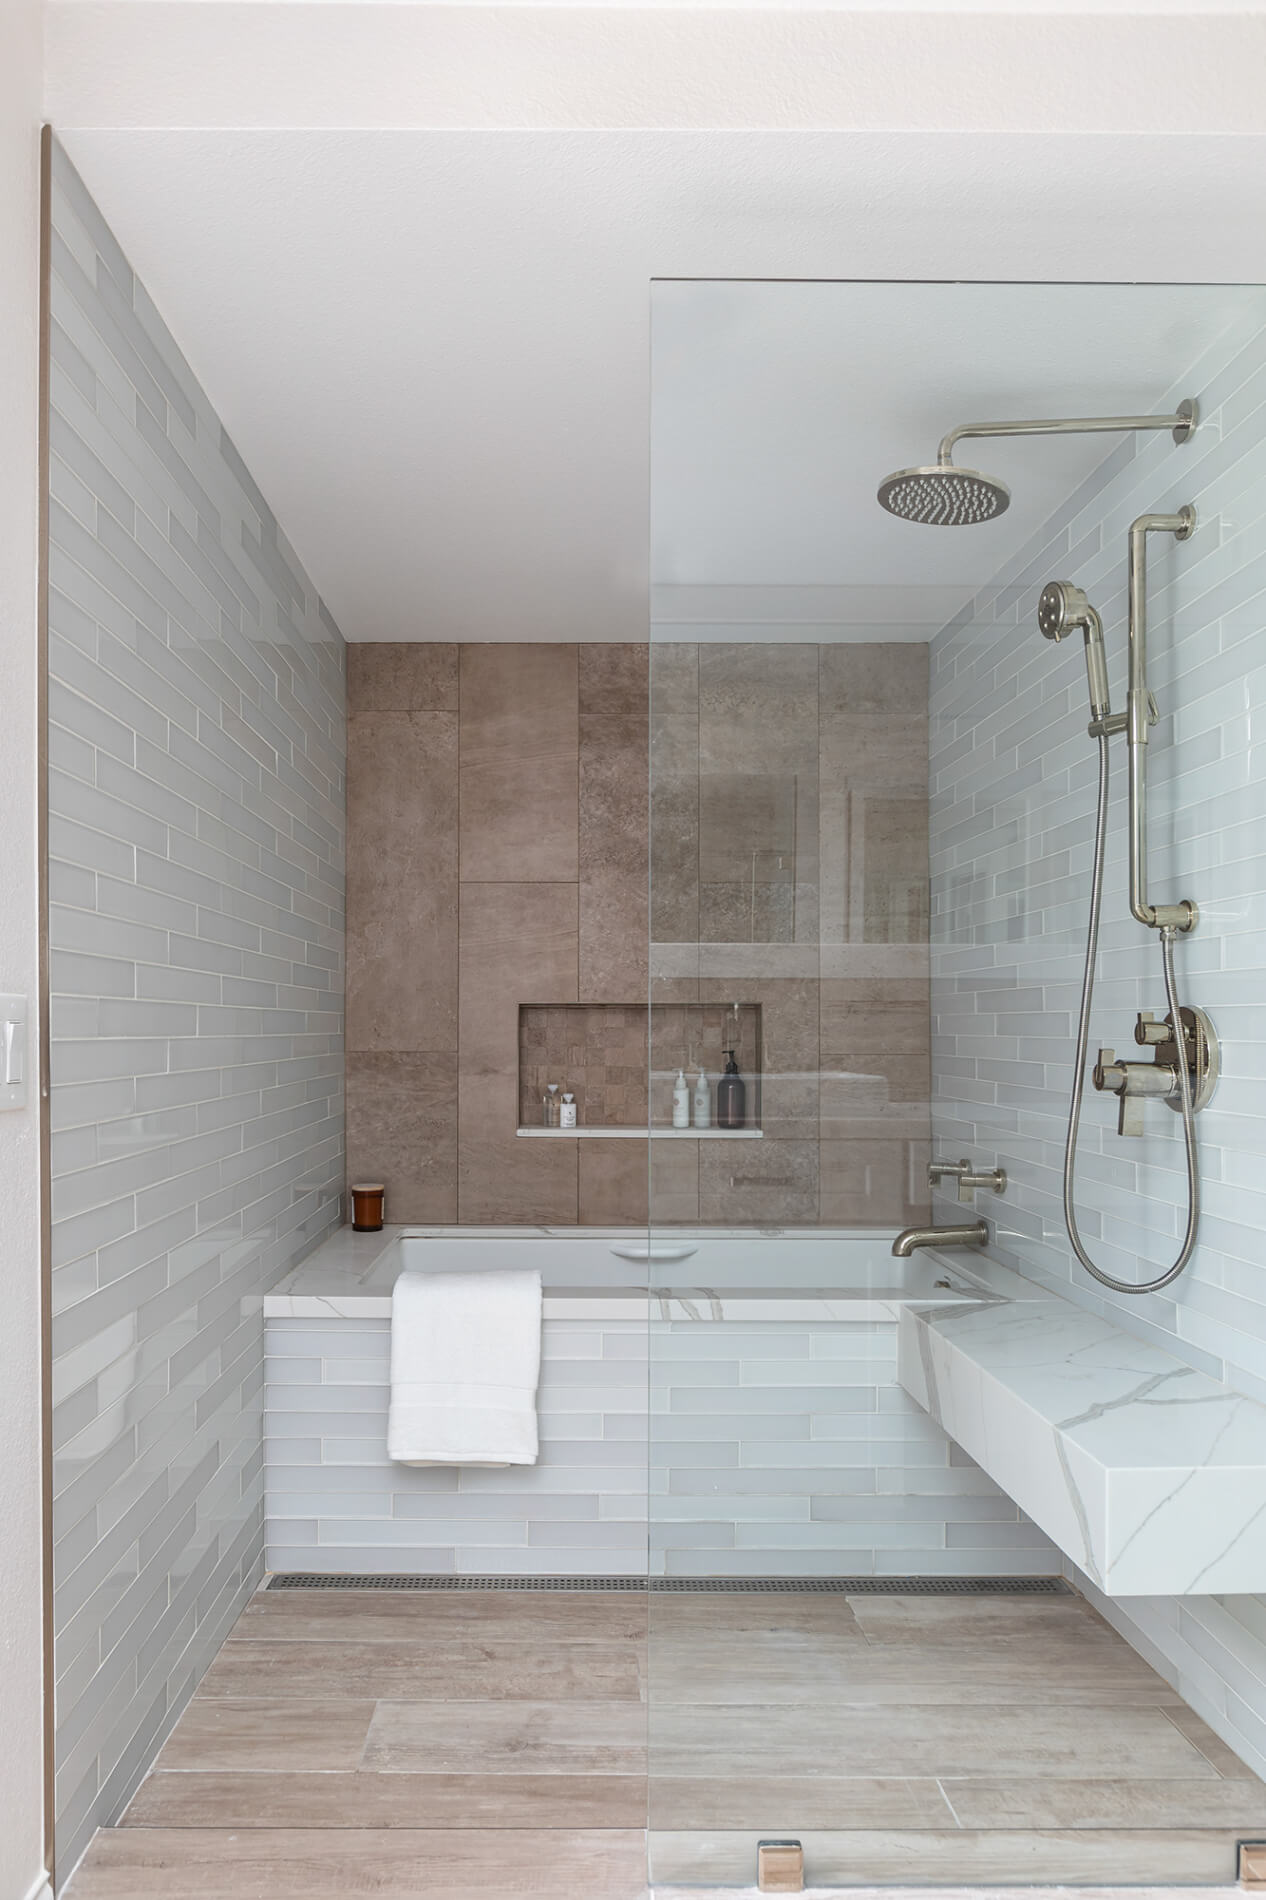 a walk-in shower with a tub